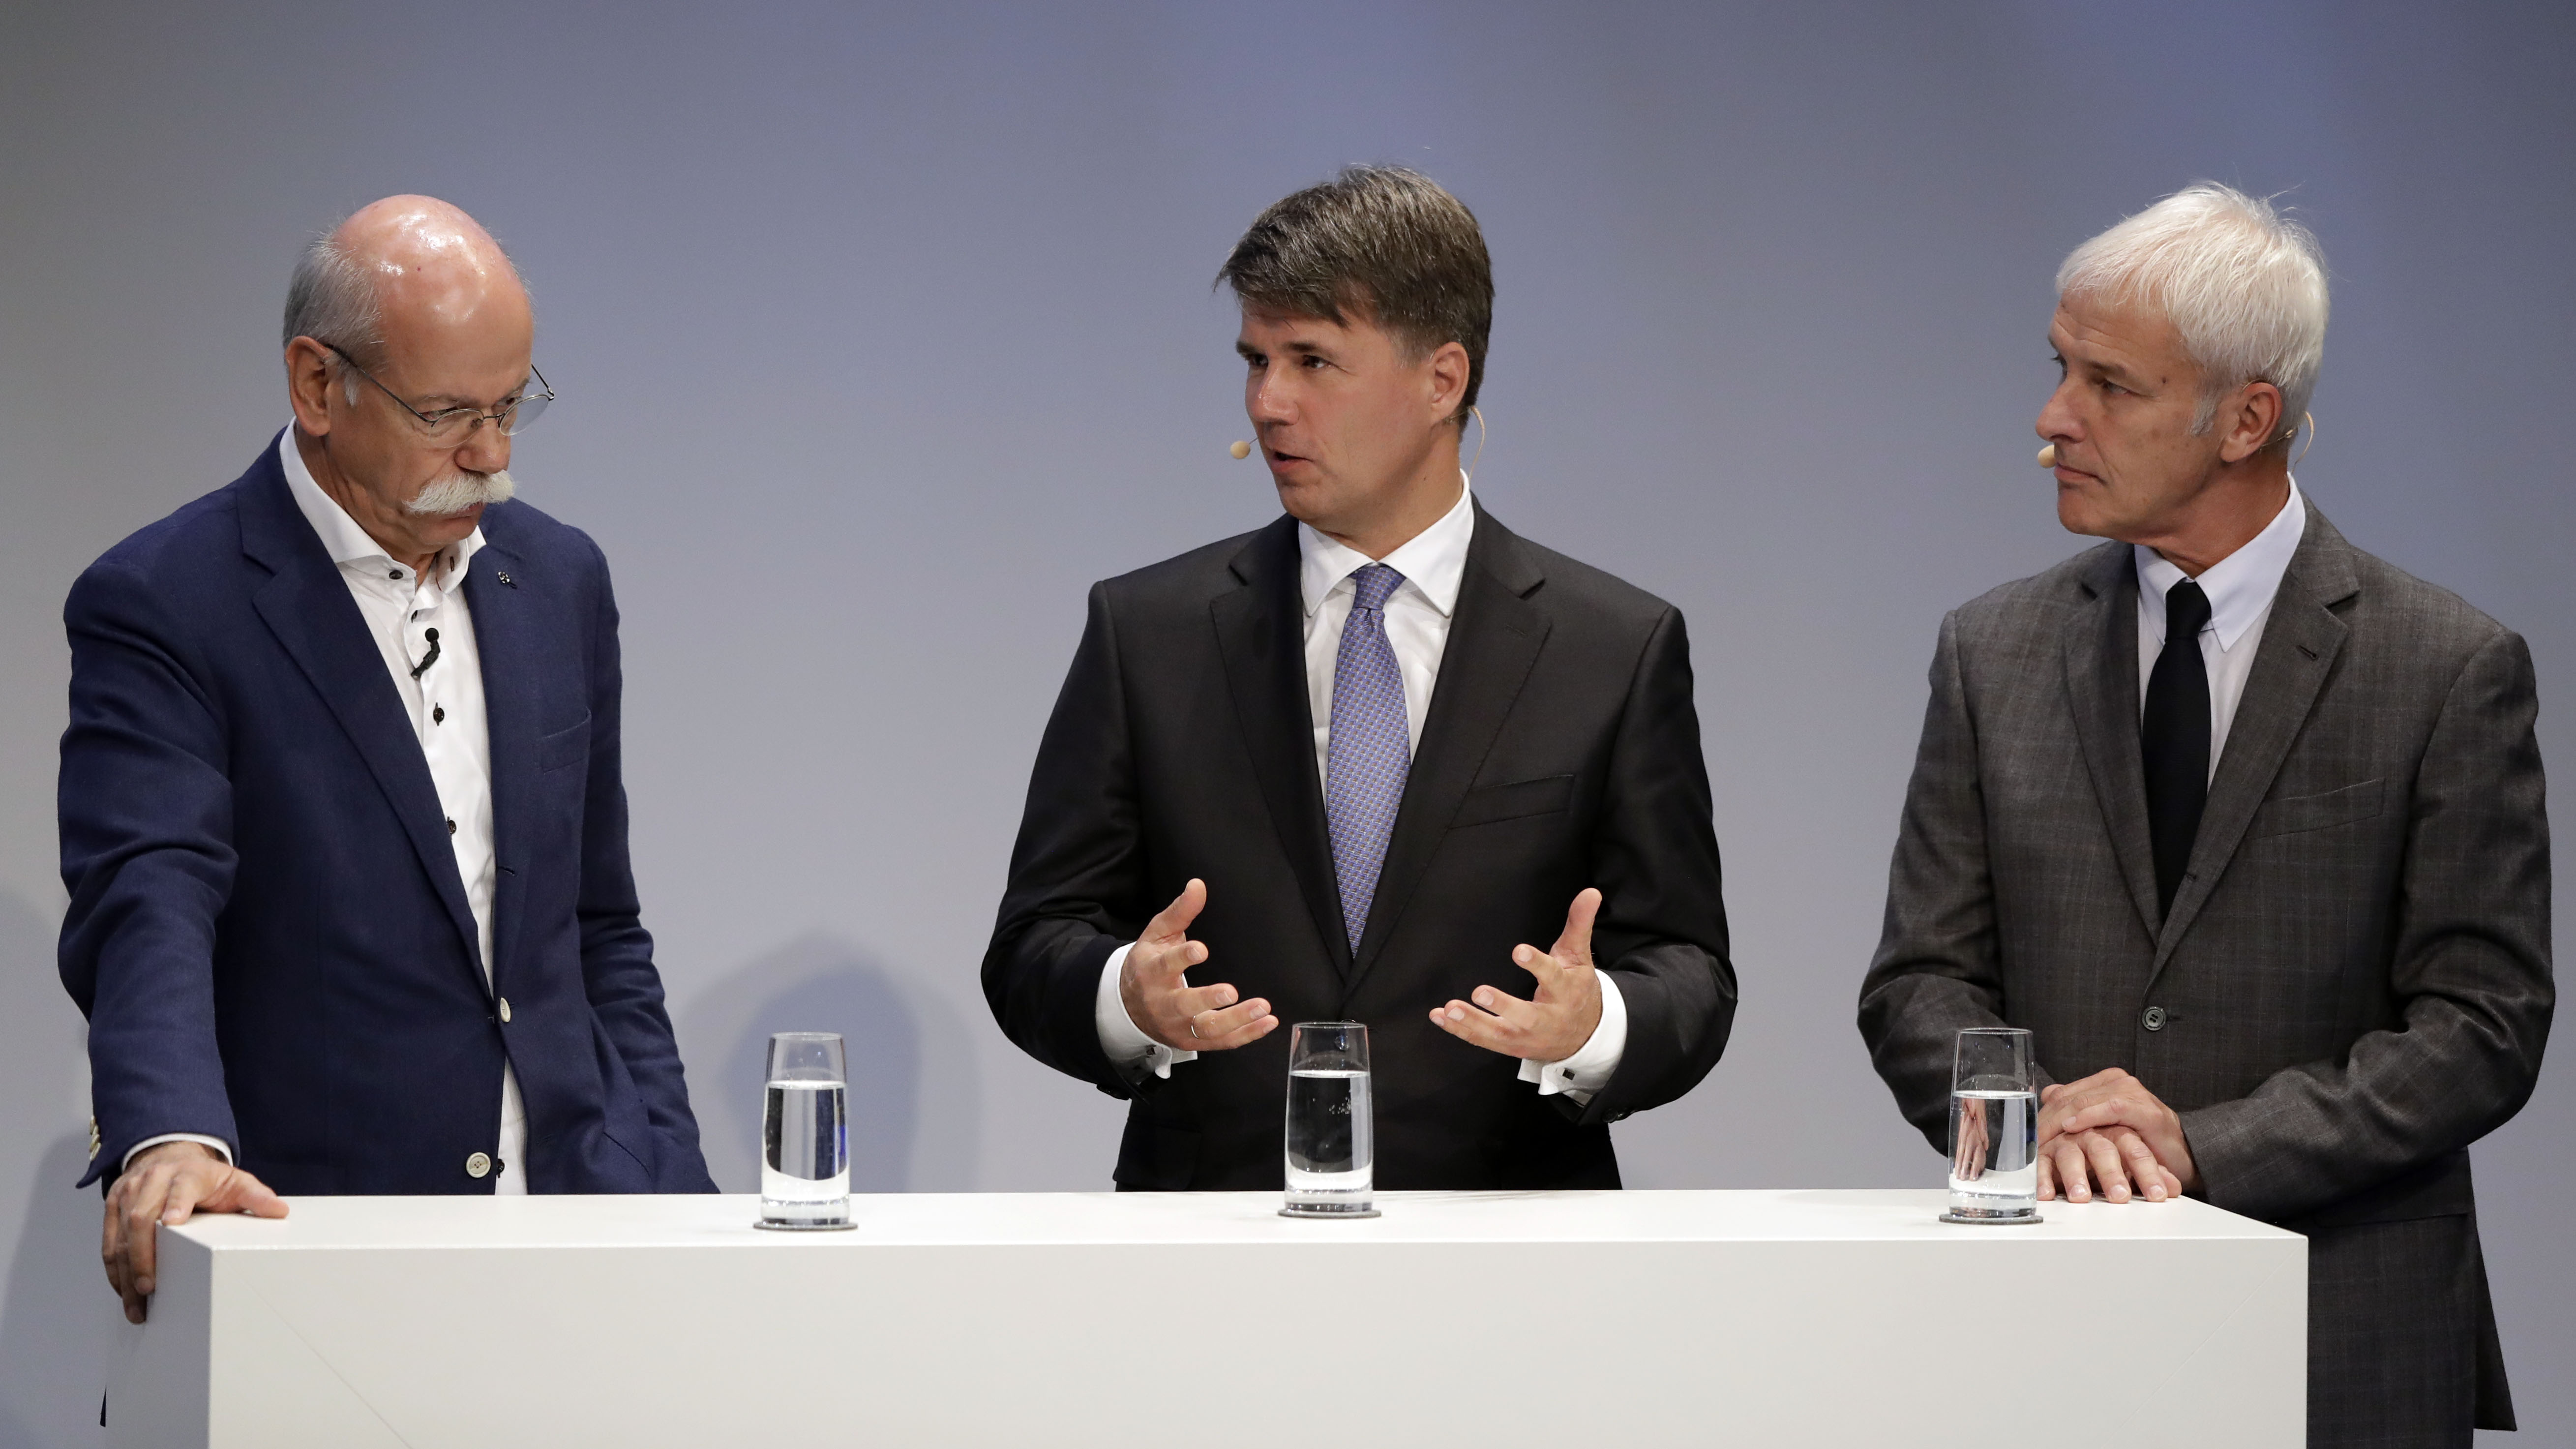 CEO of the German car manufacturer Daimler AG, Dieter Zetsche, from left, CEO of the German car manufacturer BMW, Harald Krueger, and Matthias Mueller, CEO of German car manufacturer Volkswagen, attend an Automotive Summit of BMW, Mercedes and Volkswagen in Munich, Germany, Wednesday, Nov. 9, 2016.